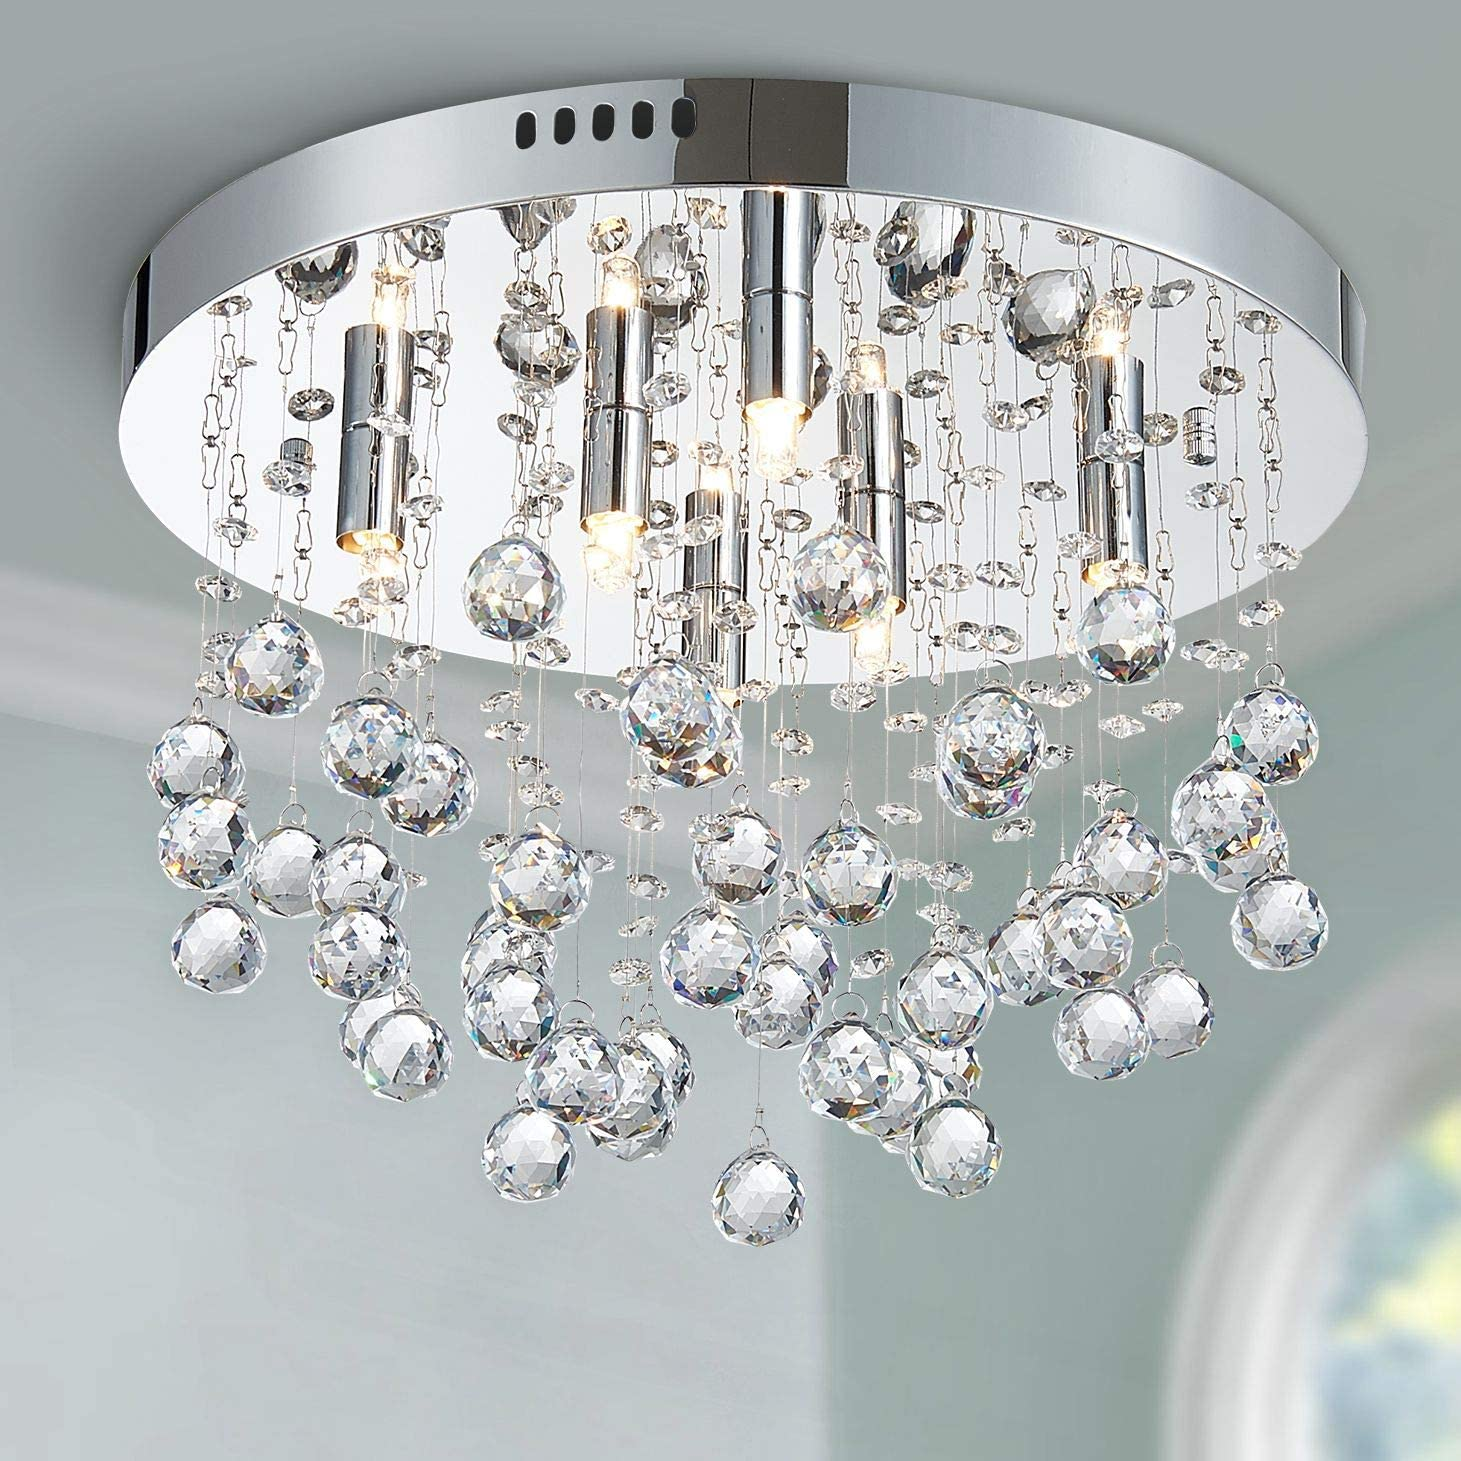 Bestier Modern Crystal Round Raindrop Chandelier Lighting Flush Mount LED Ceiling Light Fixture Pendant Lamp for Dining Room Bathroom Bedroom Livingroom 6 G9 Bulbs Required 15 in Wide 9.8 inch High